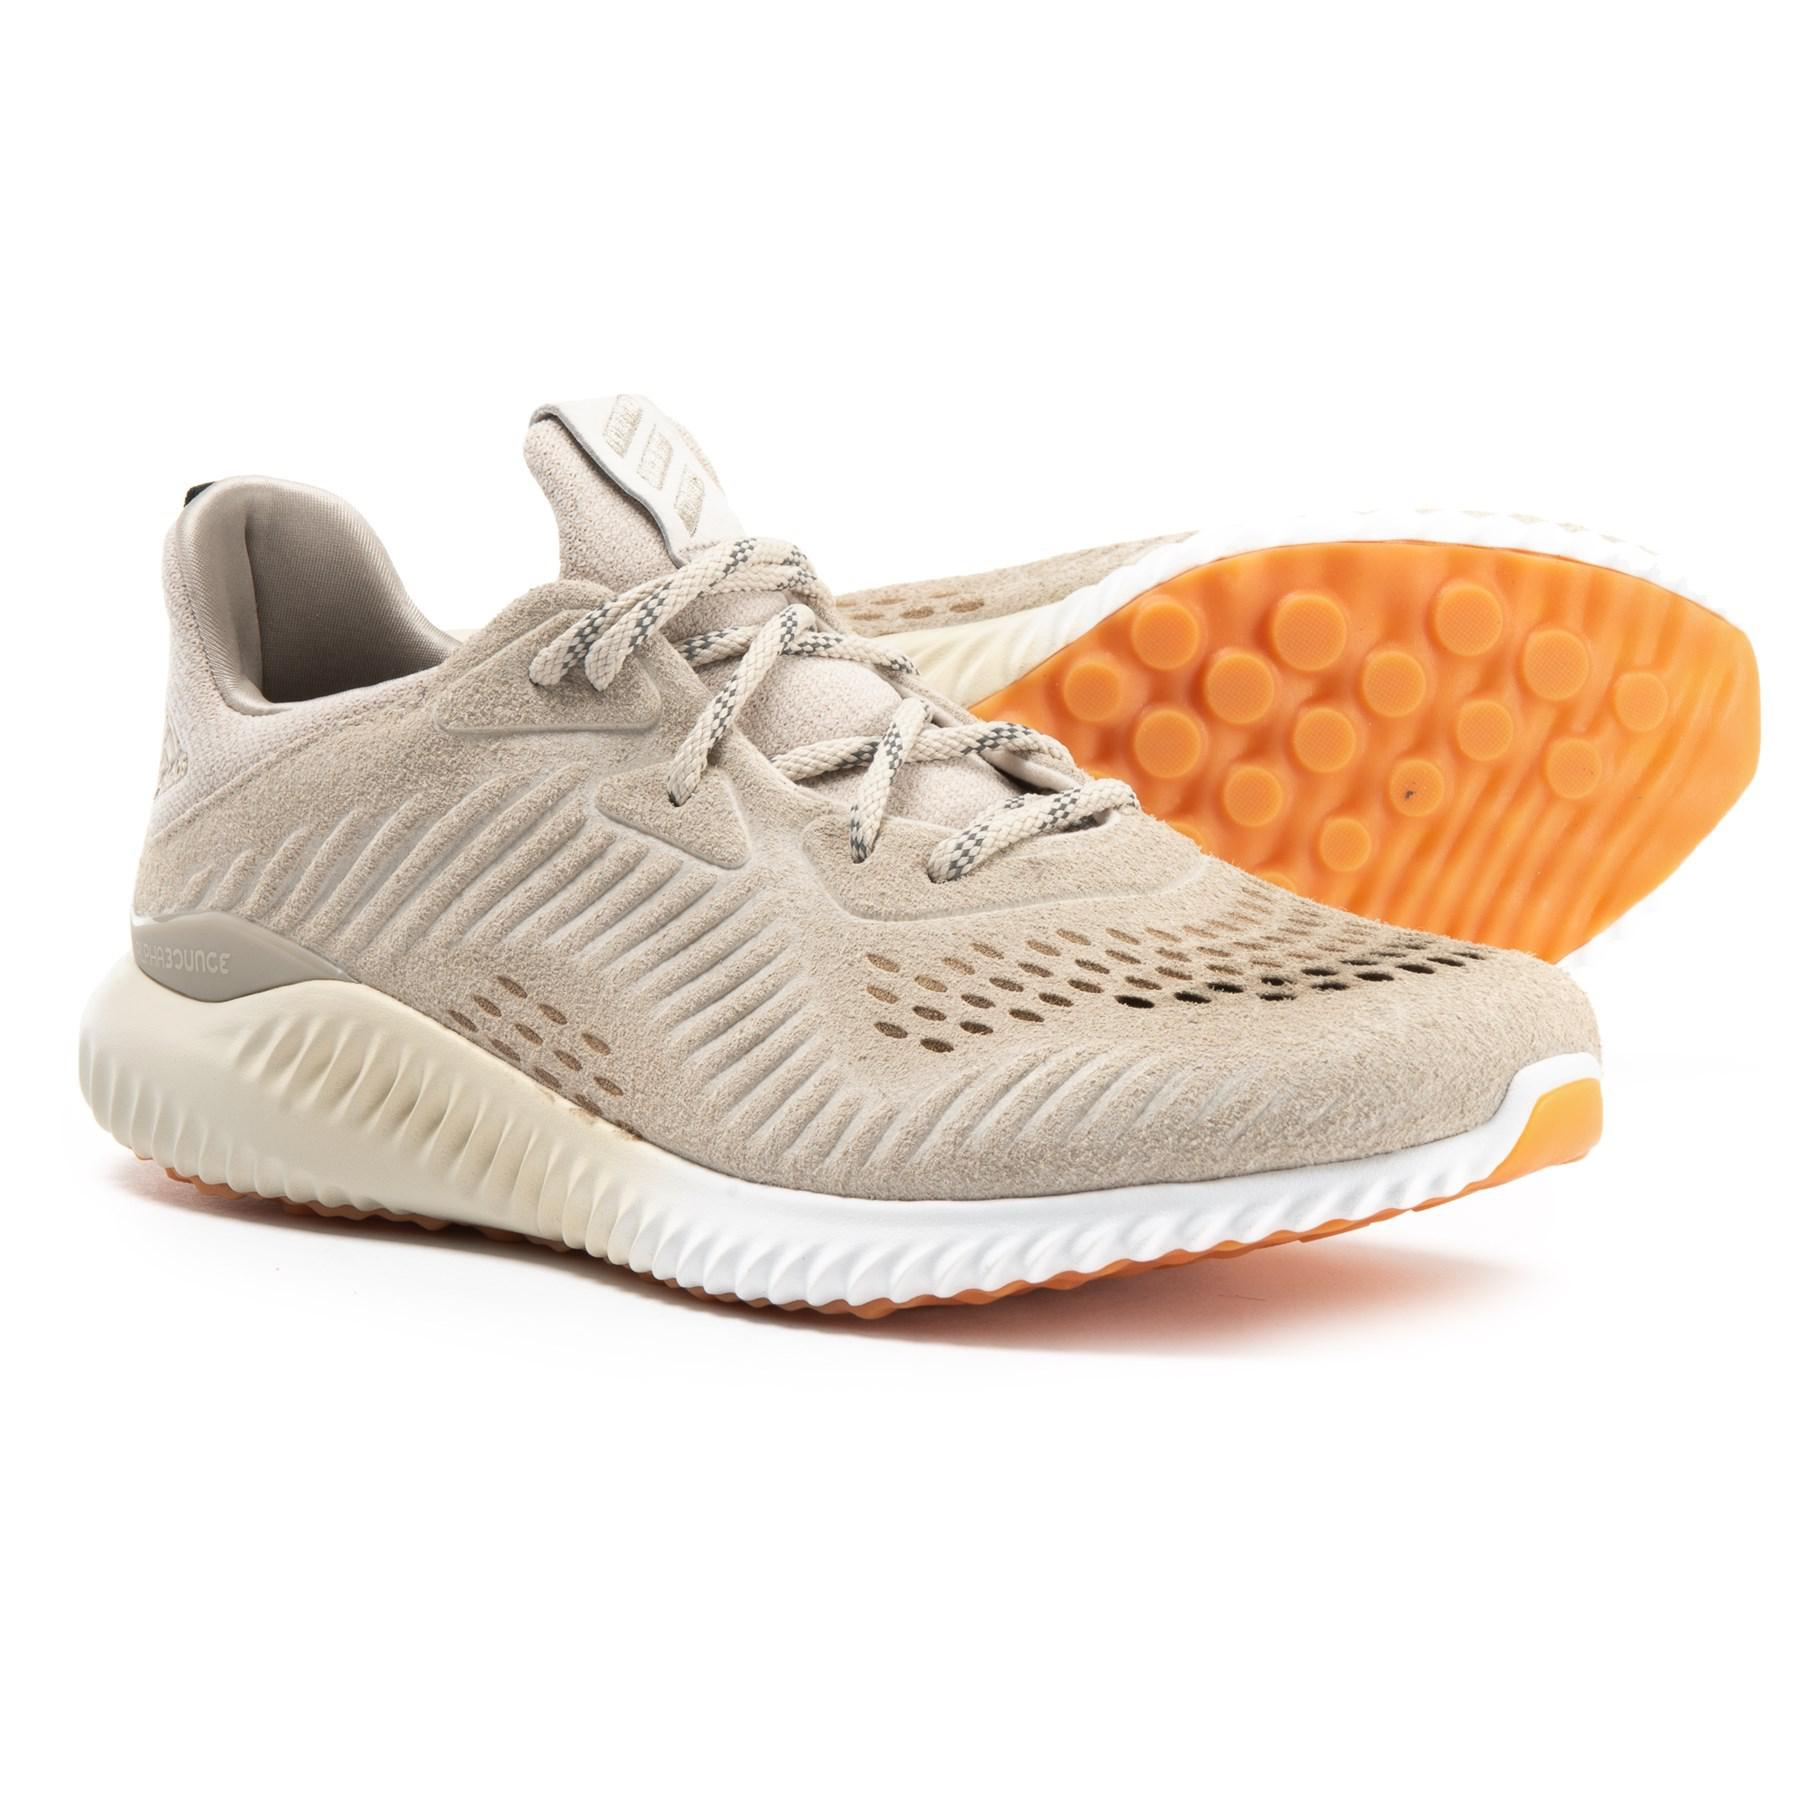 239d84cd4909b Lyst - adidas Alphabounce Leather Running Shoes (for Men) in Brown ...